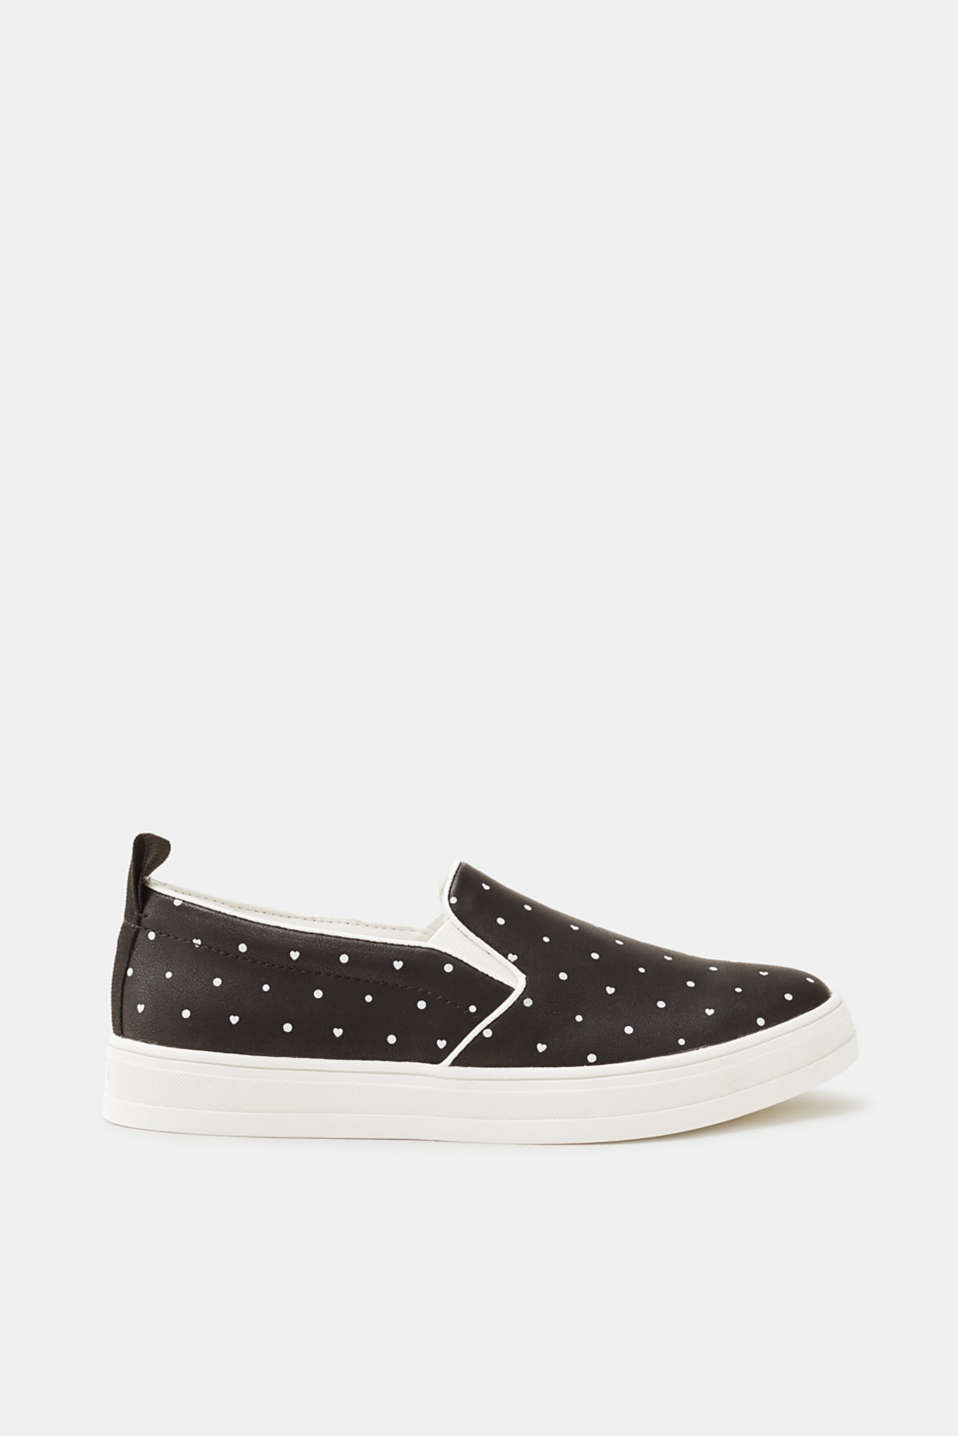 Esprit - Slip-on trainers with a minimalist print